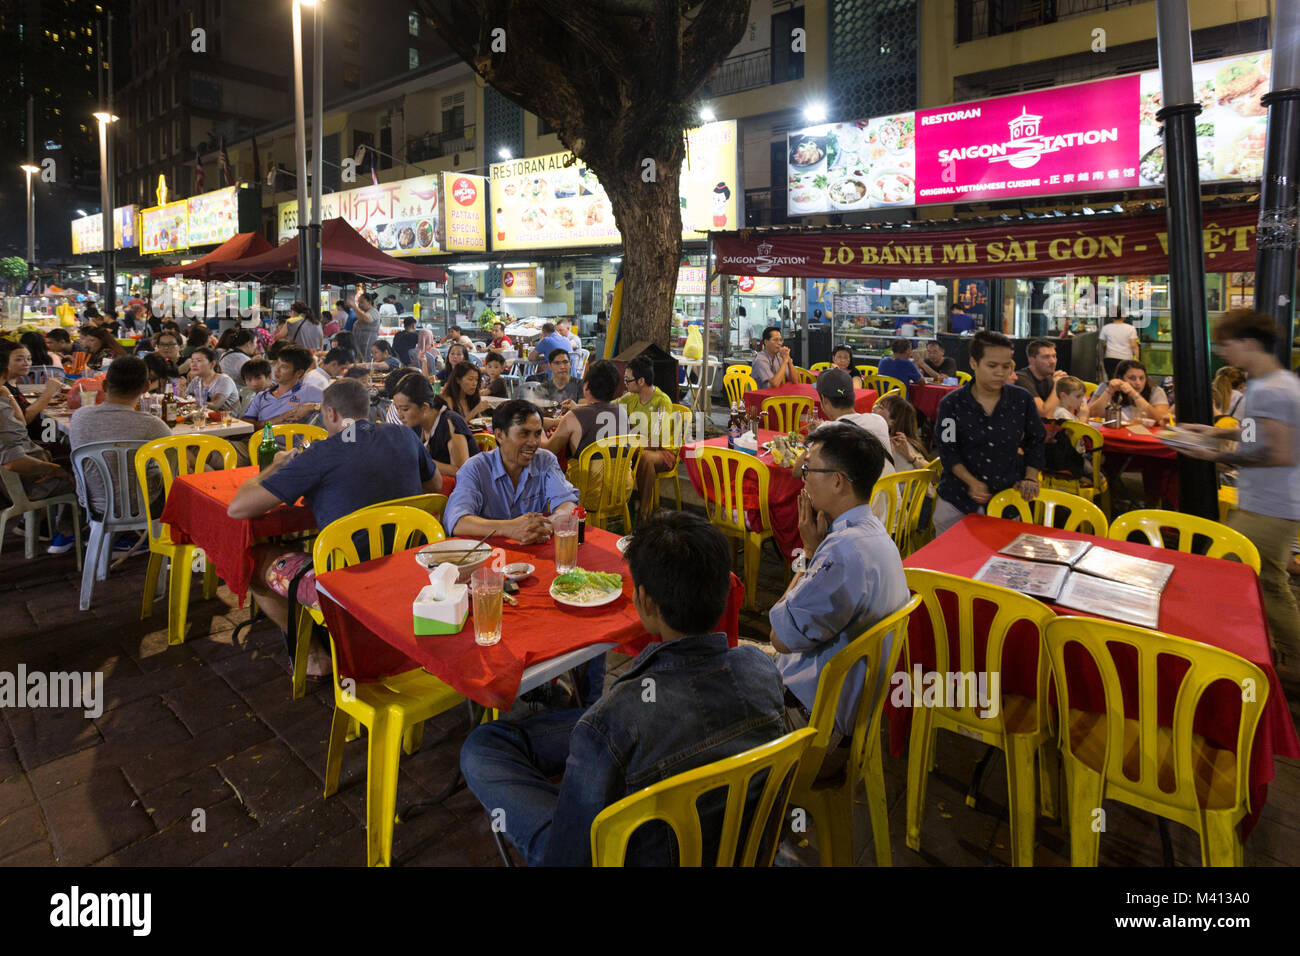 Kuala Lumpur, Malaysia - December 22 2017: Tourists and locals eating in Jalan Alor famous for its chinese food - Stock Image